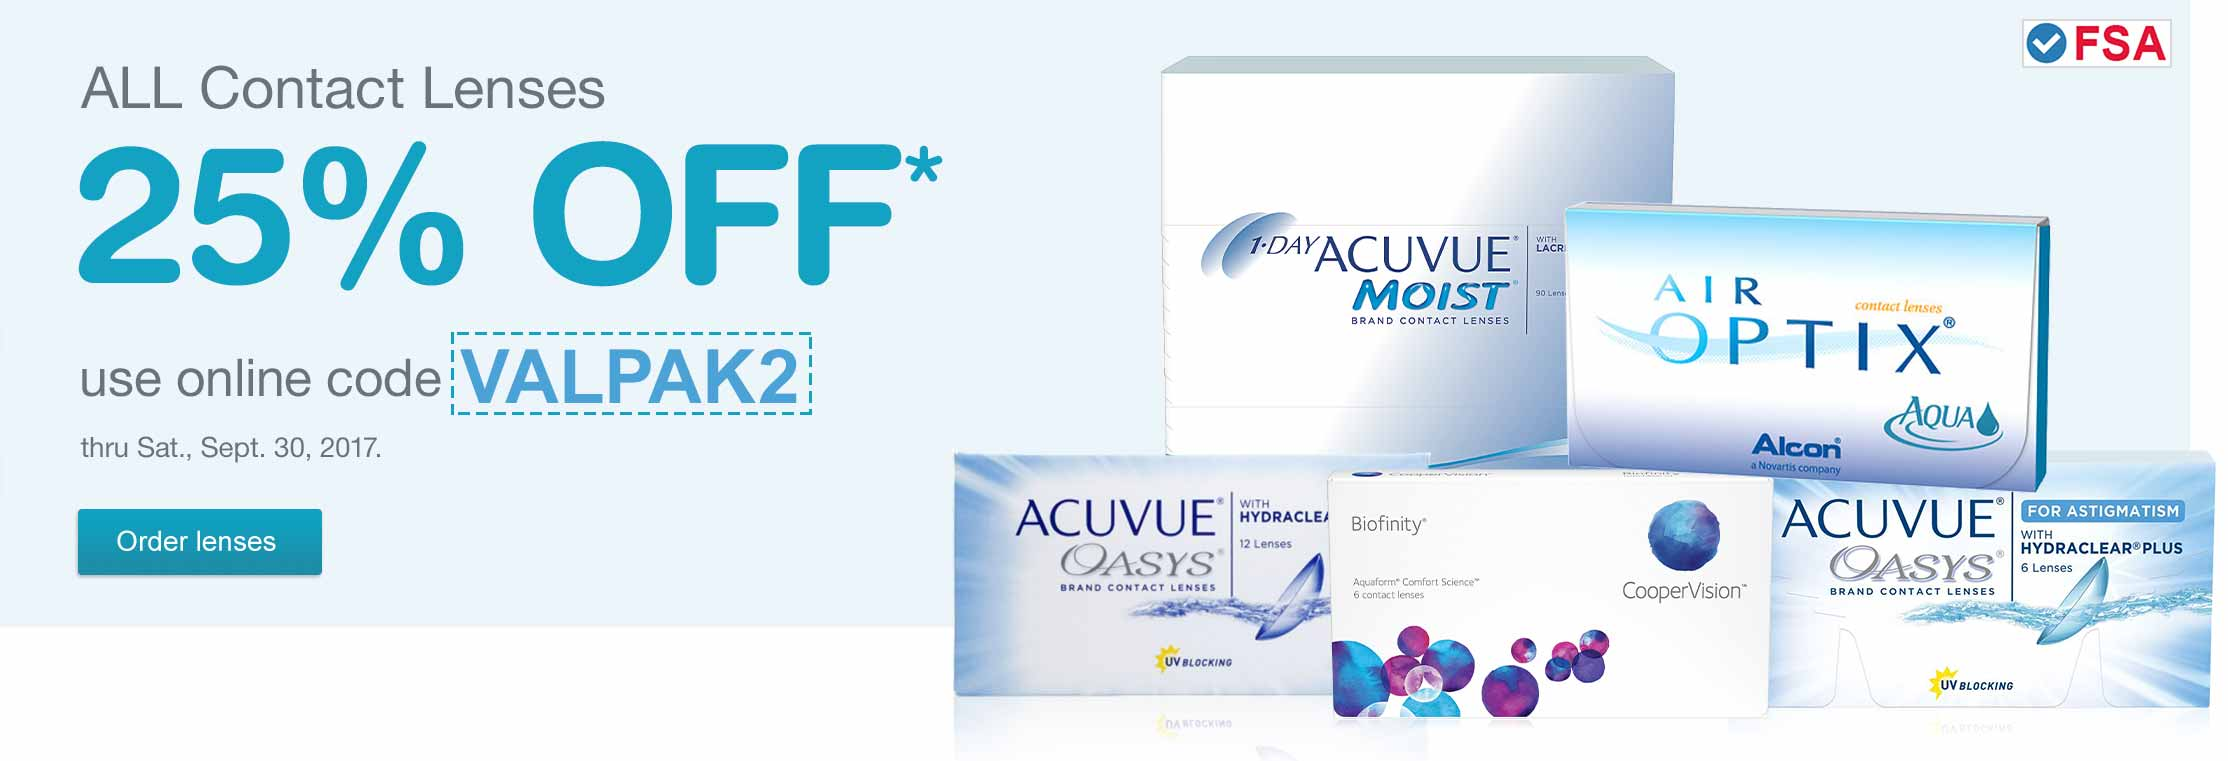 ALL Contact Lenses 25% OFF.* Use online code VALPAK2 thru Sat., Sept. 30, 2017. FSA approved. Order lenses.